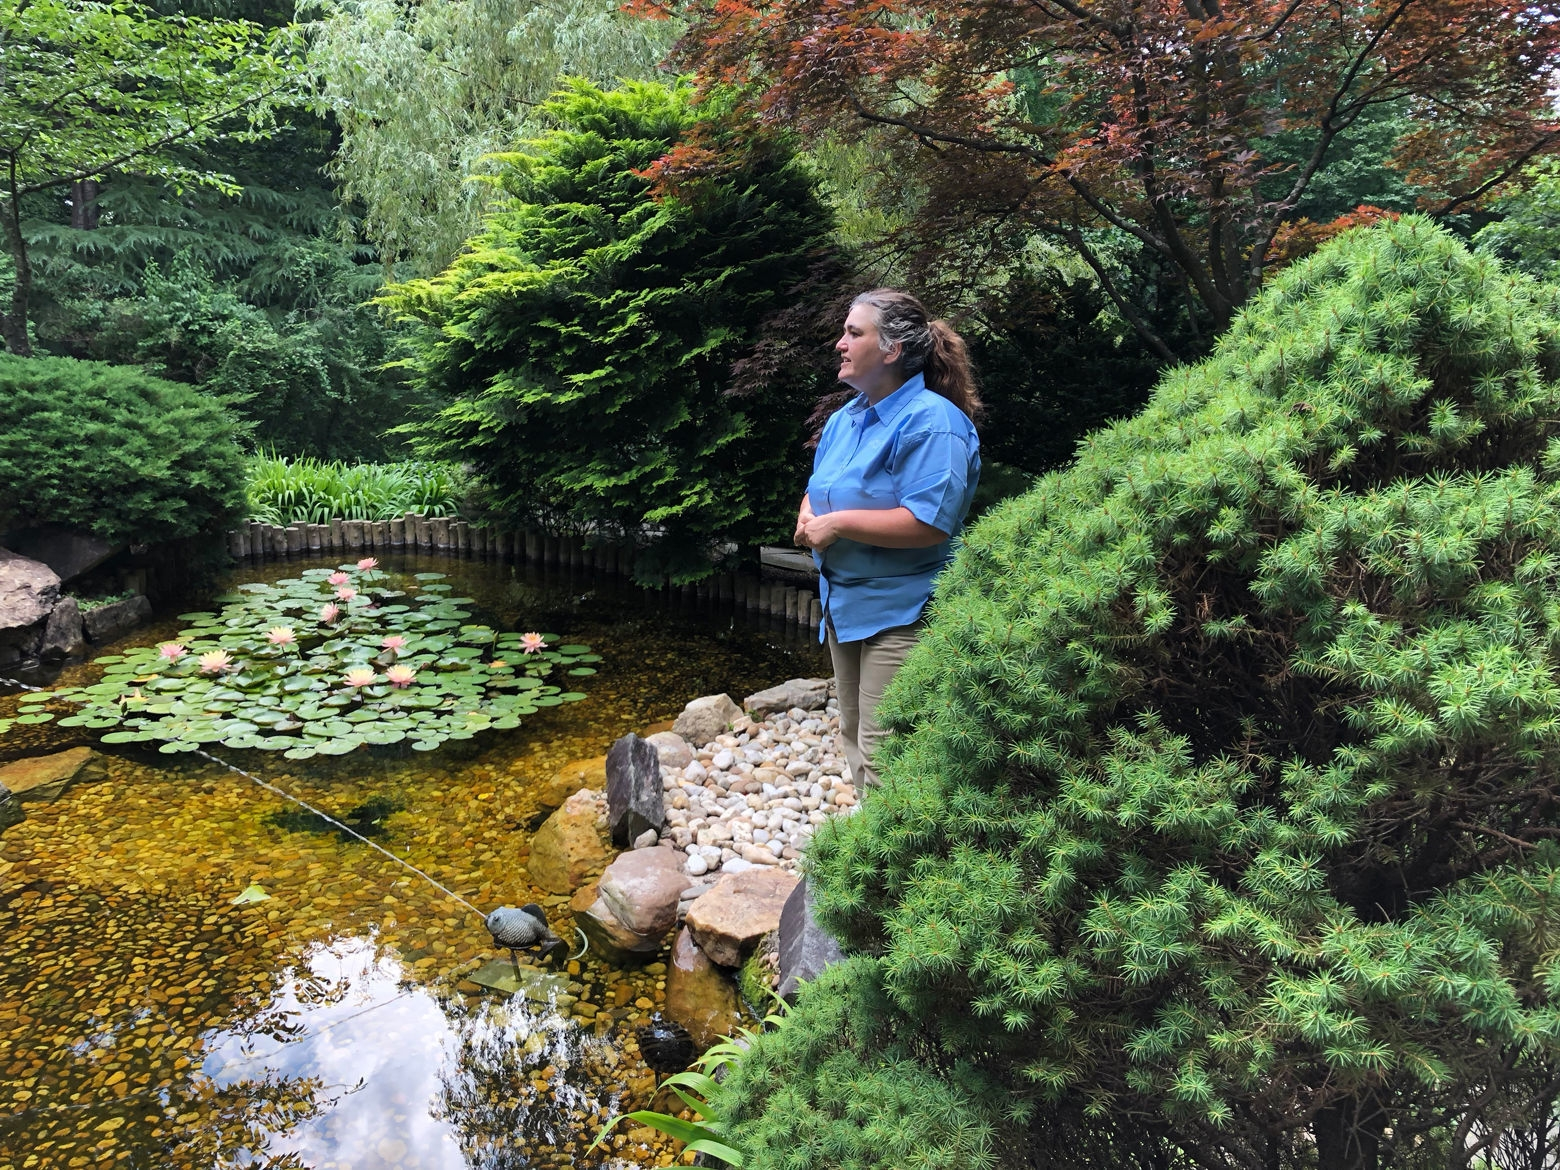 """<p><strong>Head to Hillwood</strong></p> <p>Another option to D.C.&#8217;s crowded museums is the peaceful <a href=""""http://www.hillwoodmuseum.org/"""" target=""""_blank"""" rel=""""noopener noreferrer"""">Hillwood Estate and Gardens</a>, which is tucked just a few blocks behind the Van Ness Metro station in Northwest.</p> <p>The former home ofMarjorie Merriweather Post is now a museum that houses her collection of Russian imperial art and 18th century French decorative art, plus it sits on 25 acres of lush gardens.</p>"""